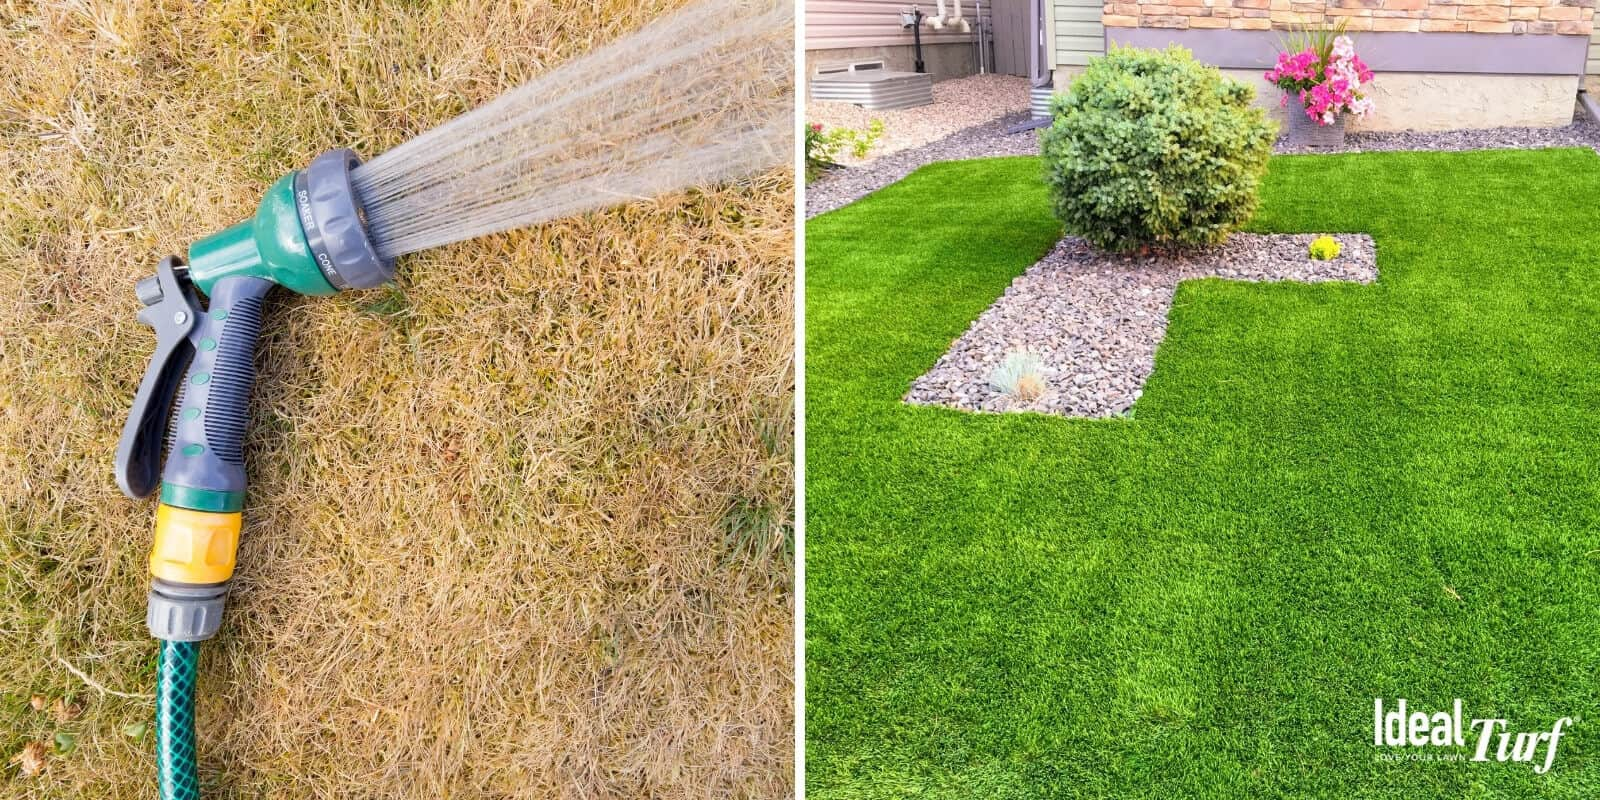 2. Does Artificial Grass Need Water